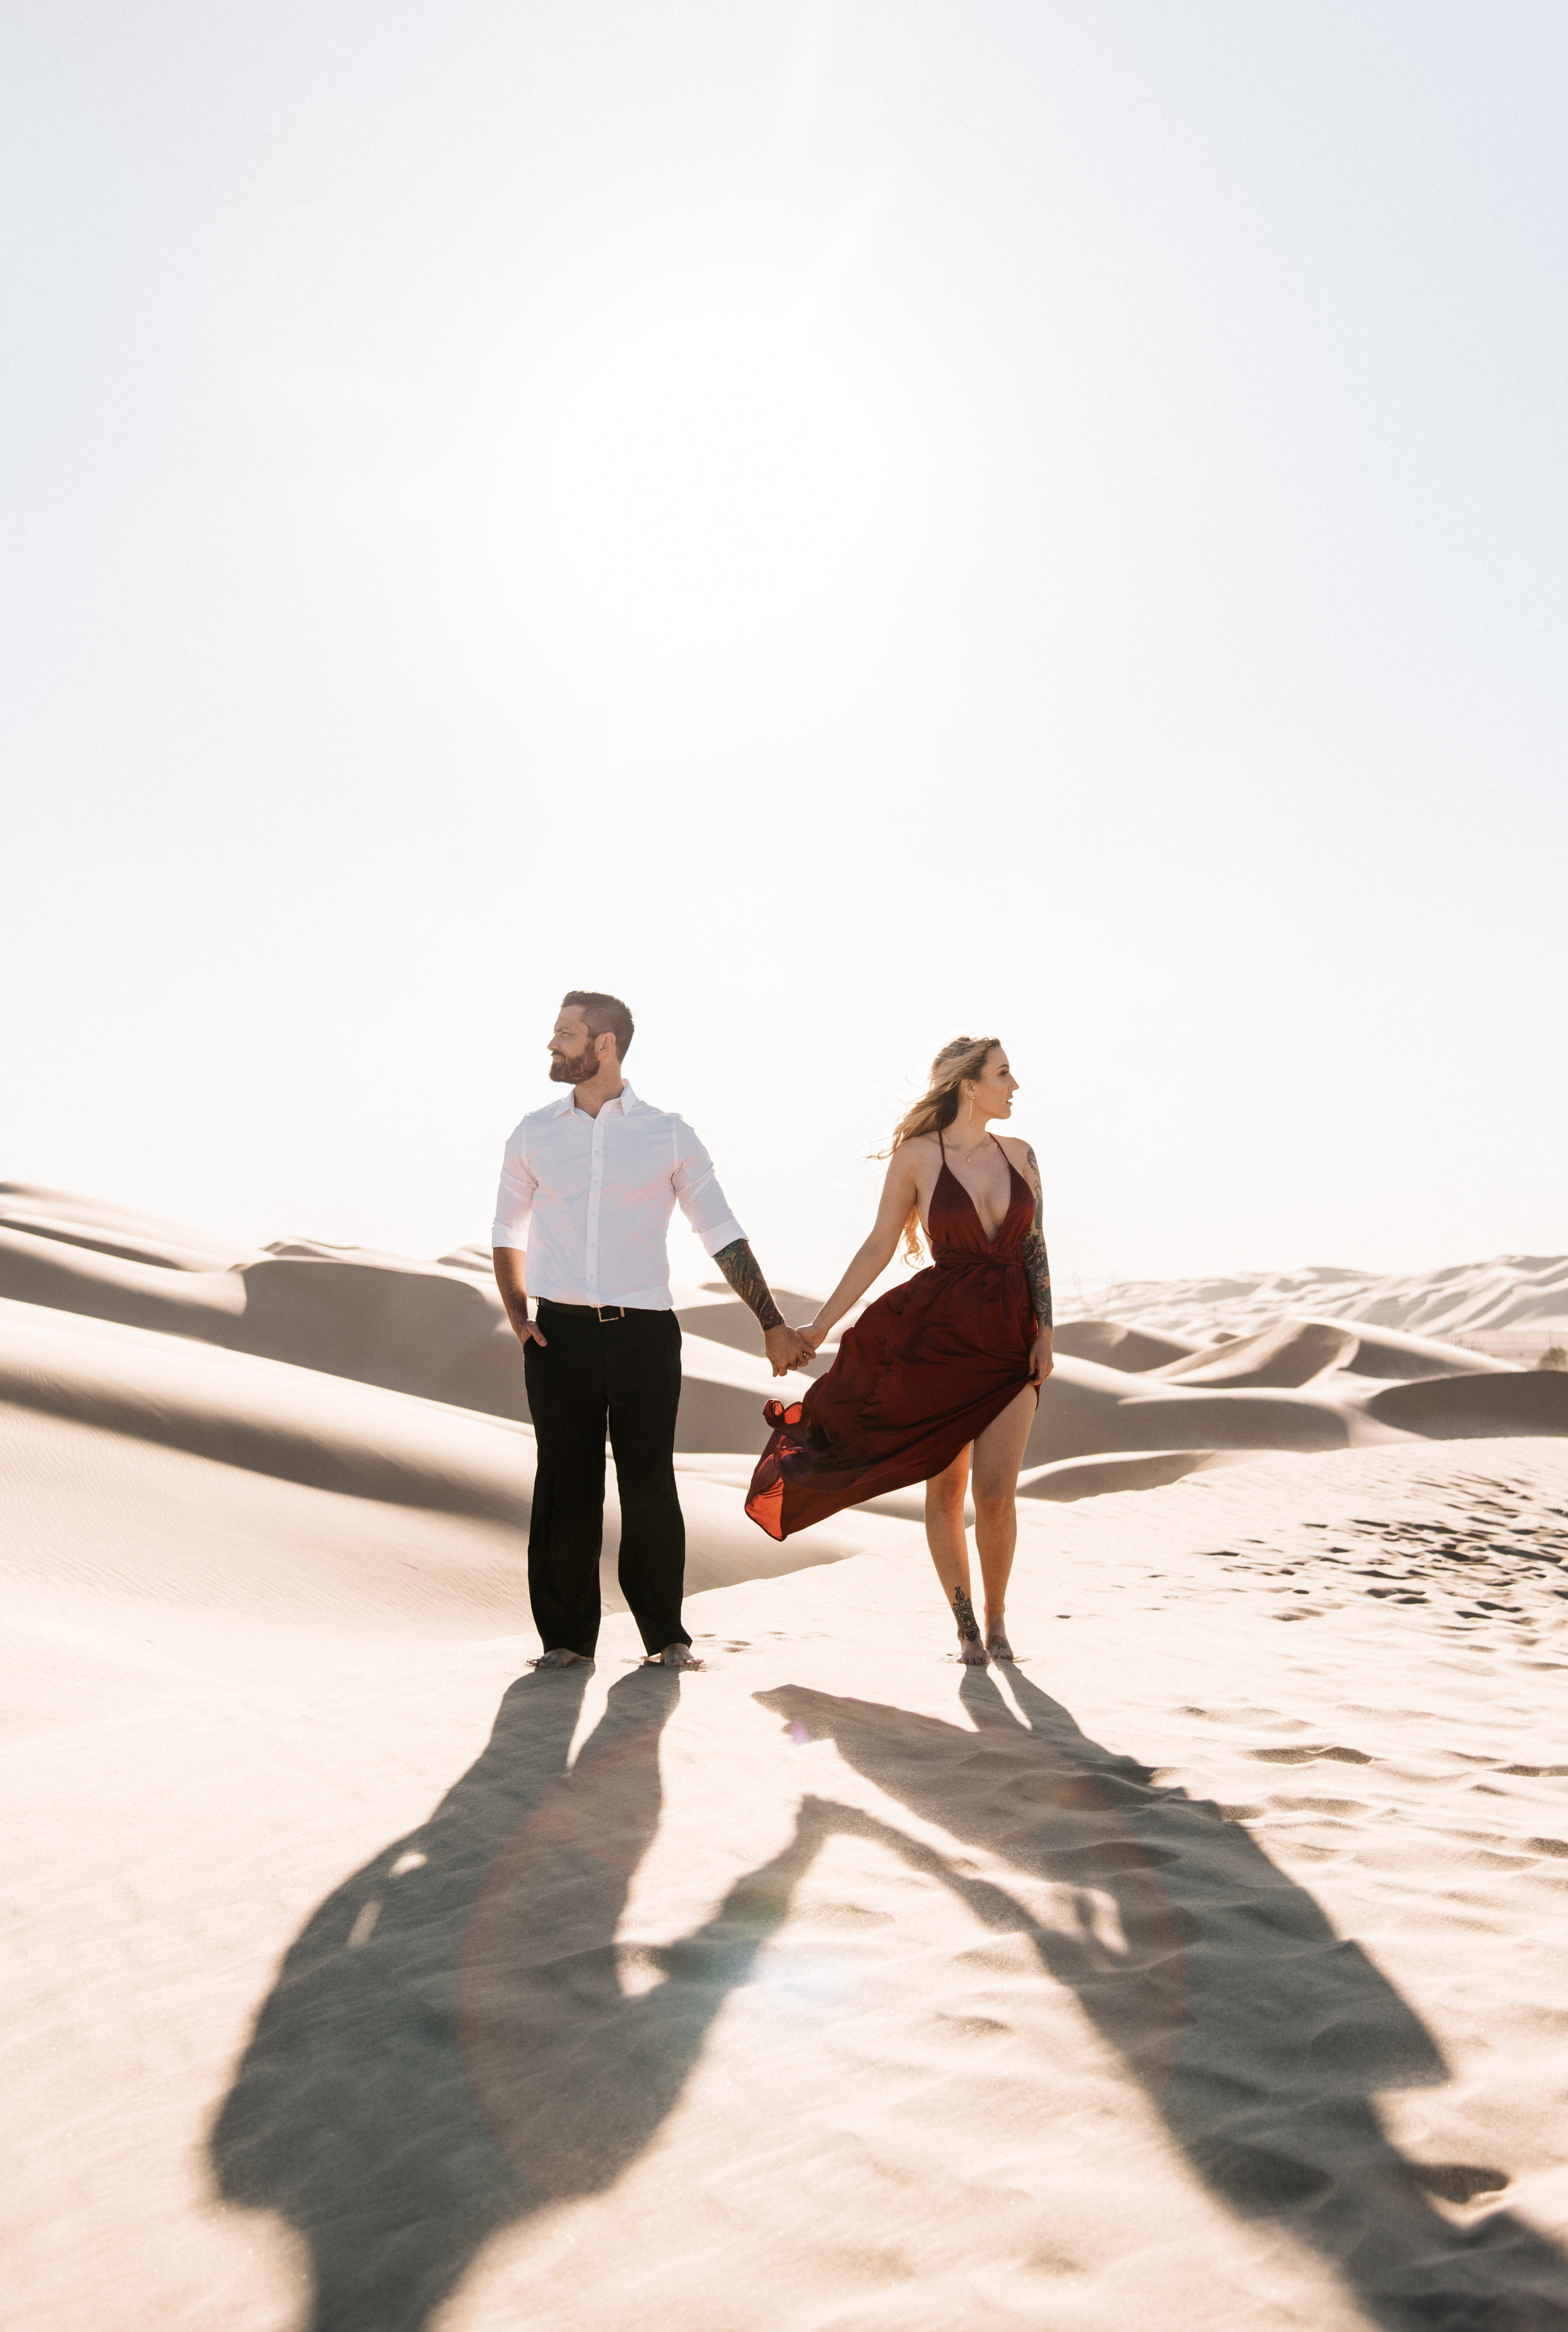 SamErica Studios - Modern San Diego Engagement Photographer - Adventure Engagement Session in Glamis Sand Dunes California-33.jpg